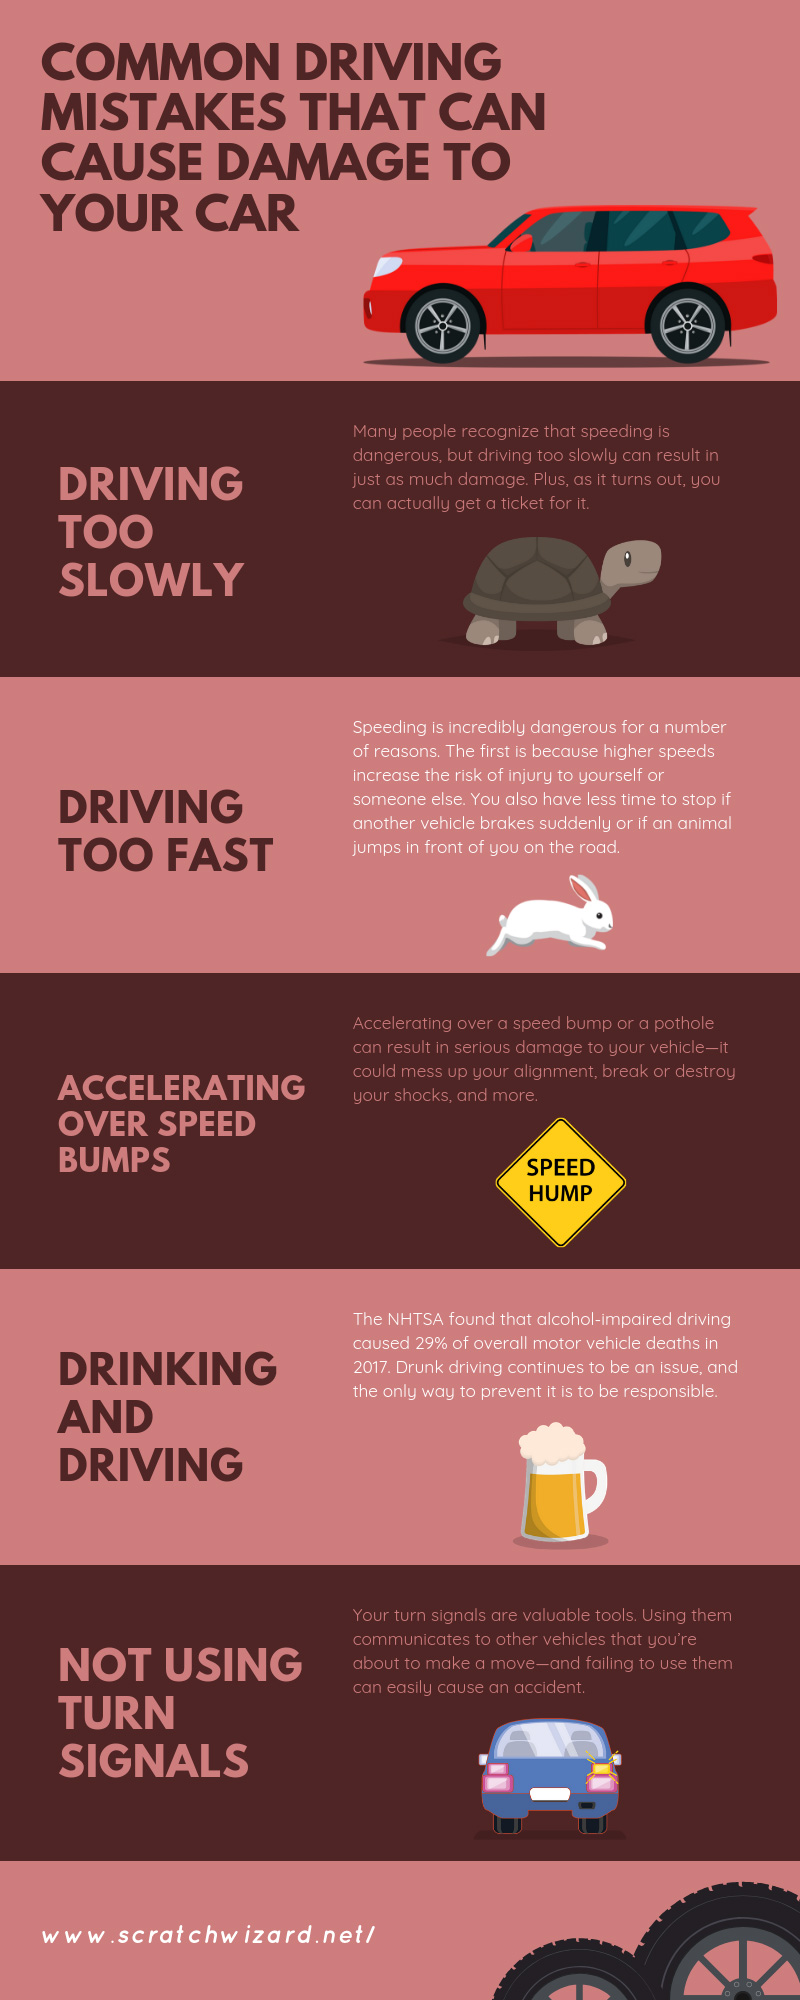 13 Common Driving Mistakes That Can Cause Damage to Your Car infographic